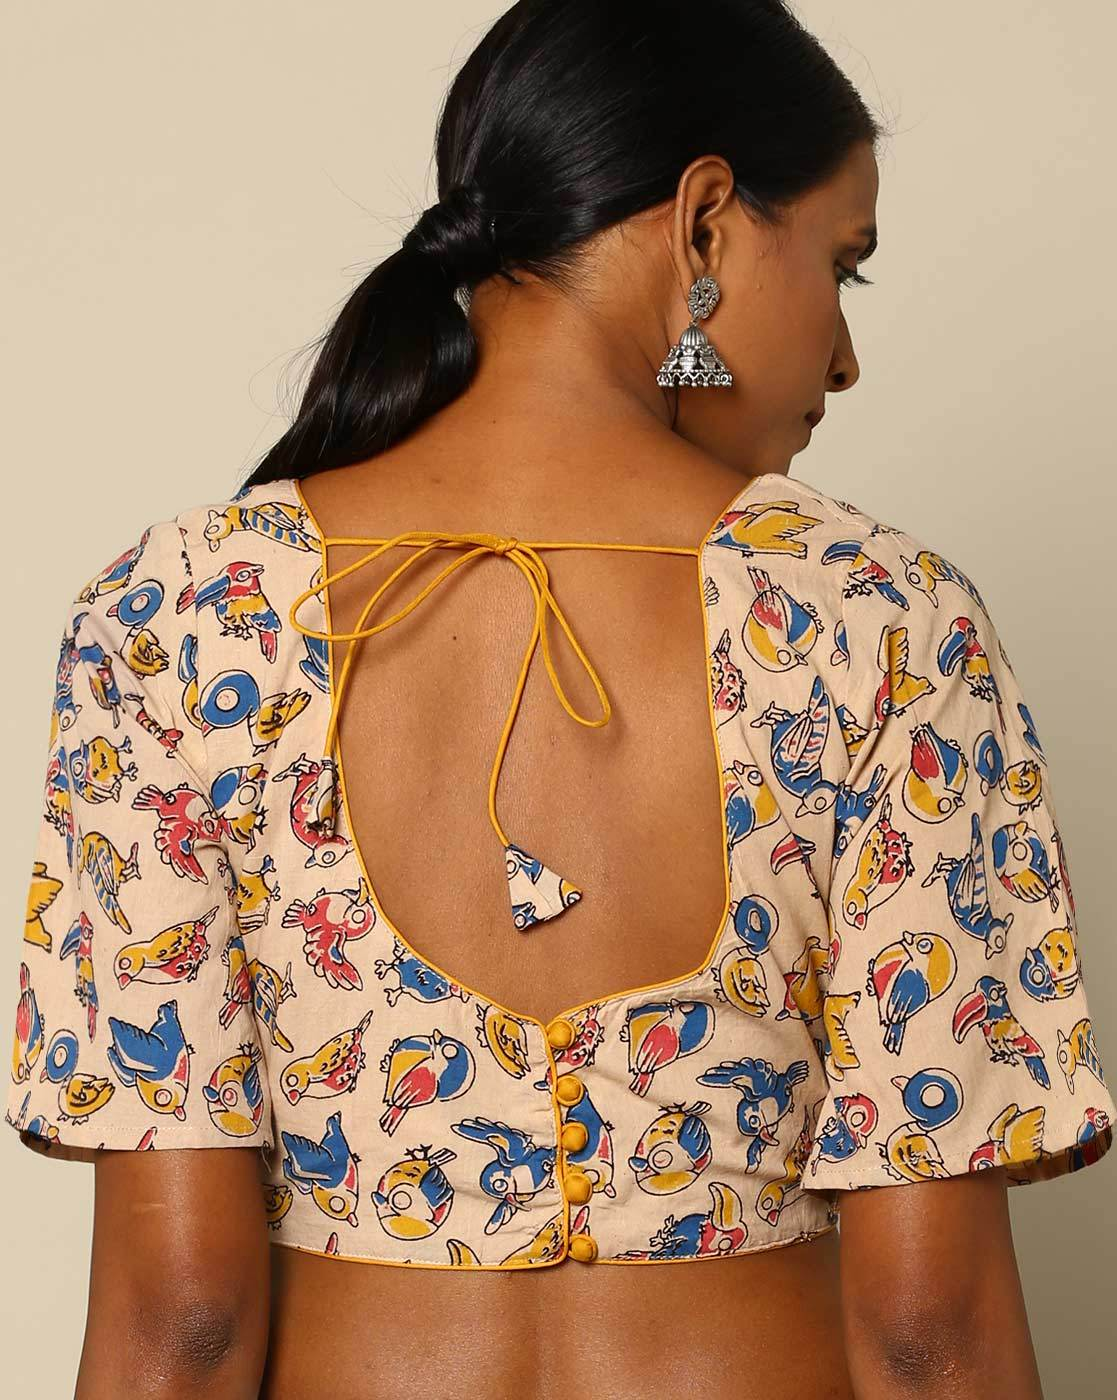 And Our Faces, My Heart, Brief as Photos - John Berger - Google Books Blouse back neck designs 2018 photos